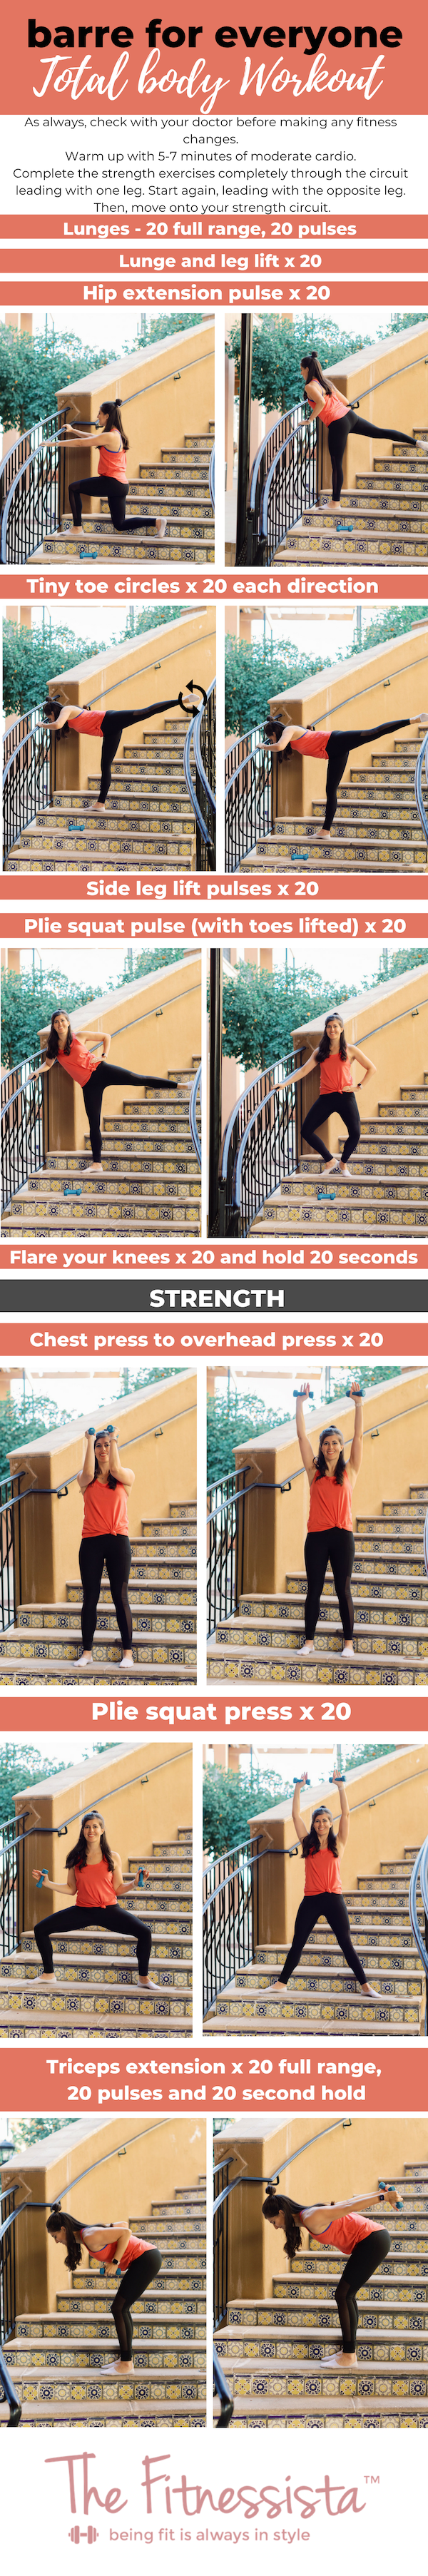 Barre for everyone total body strength workout